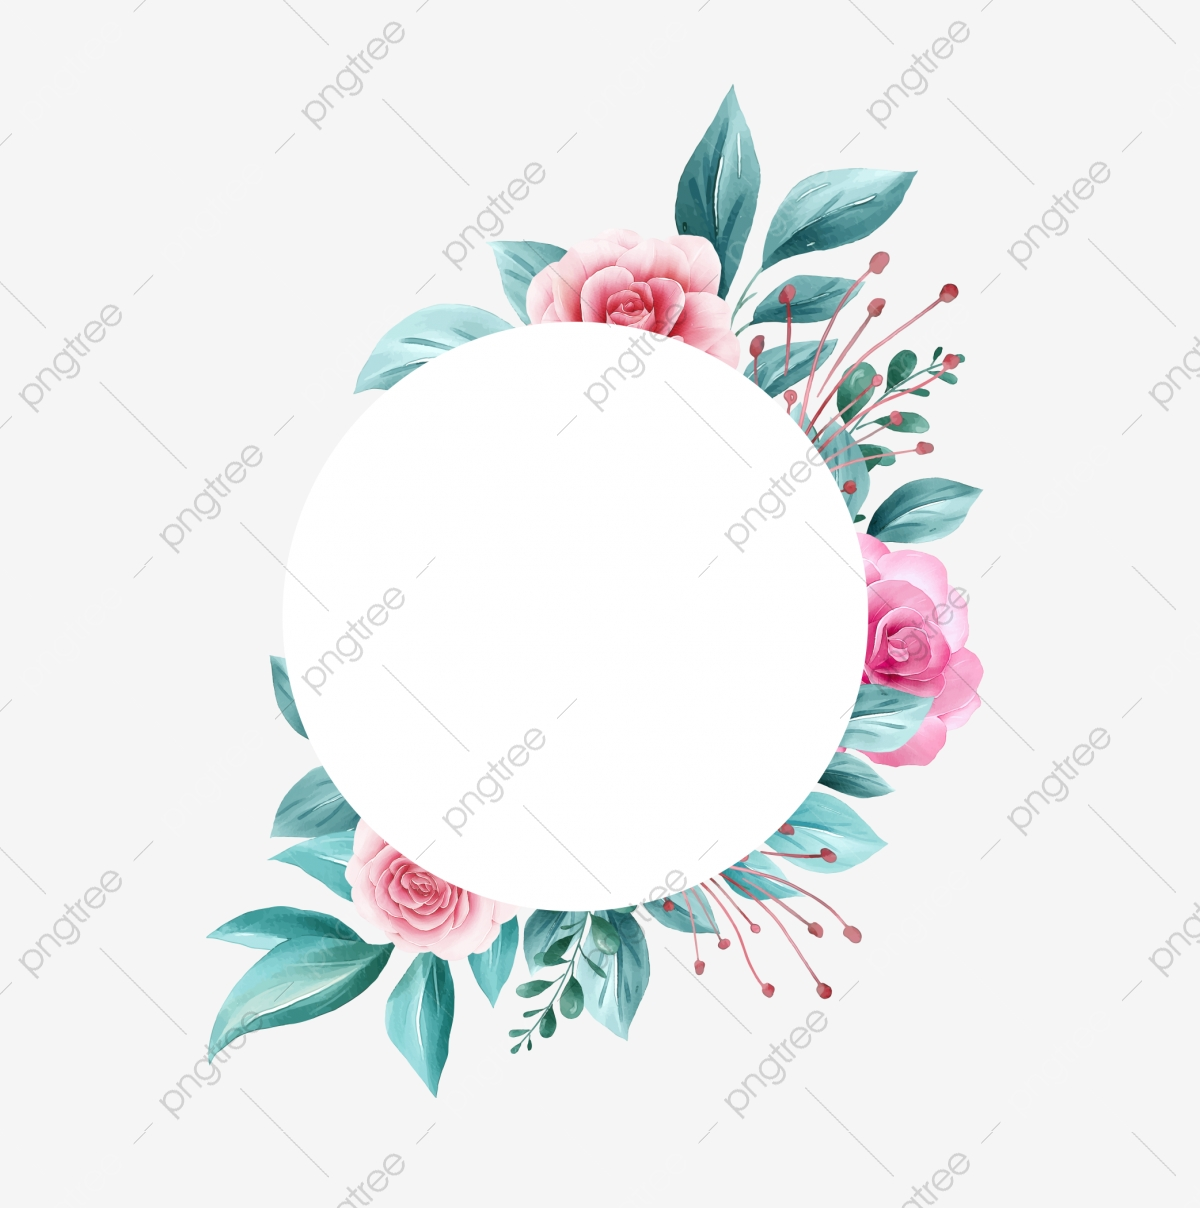 Watercolor Flower Png Images Vector And Psd Files Free Download On Pngtree